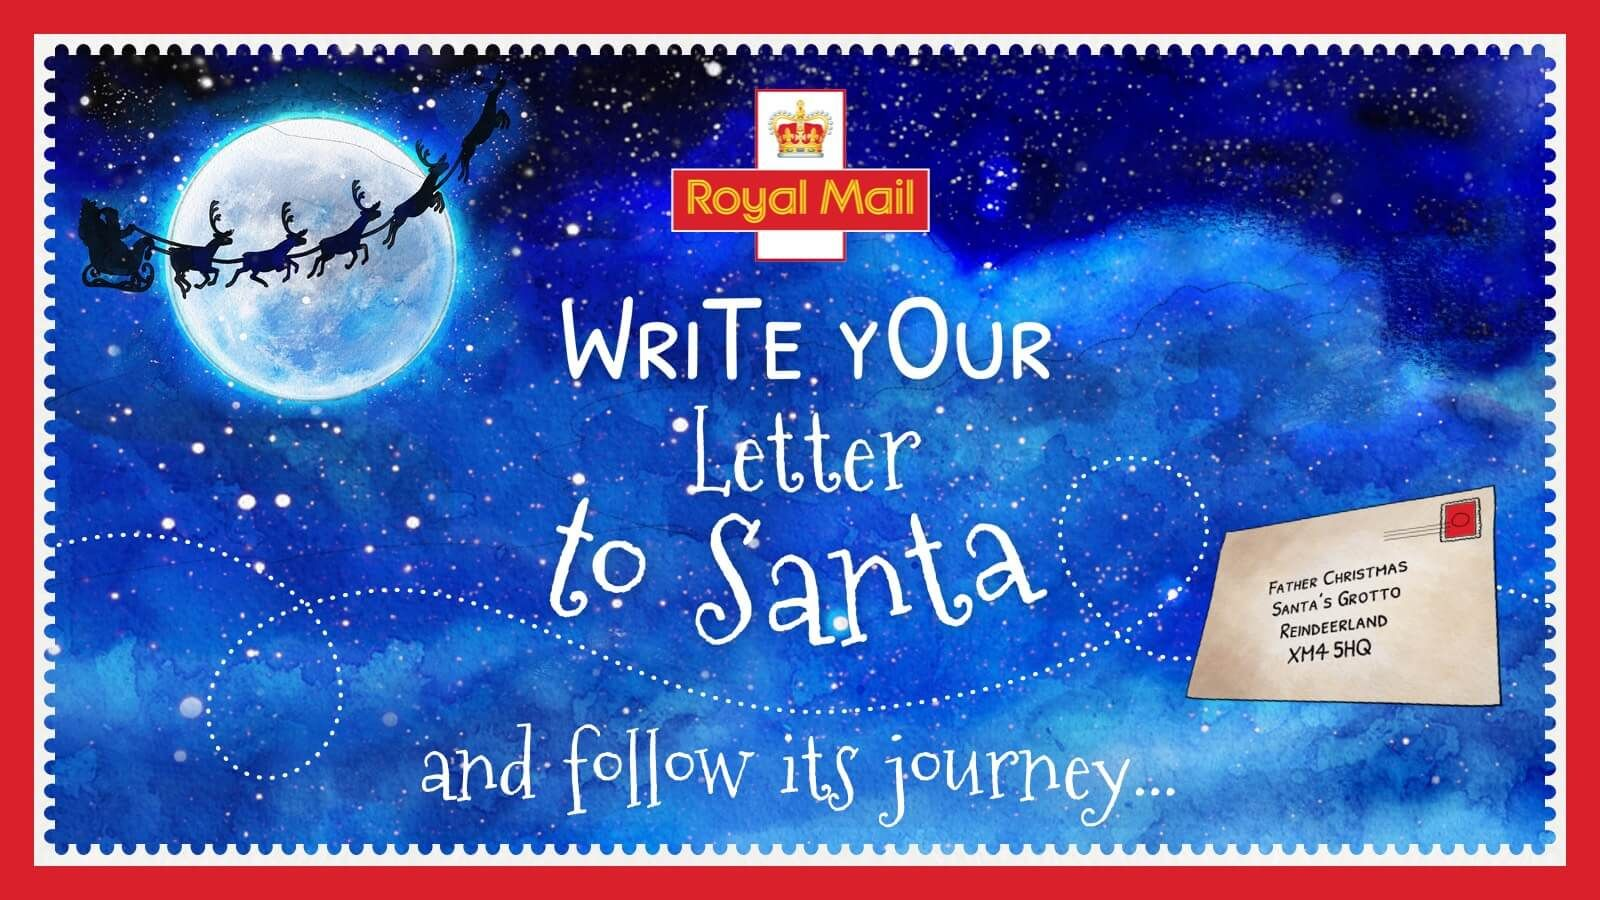 It's time to send your Christmas letters to Santa! Last